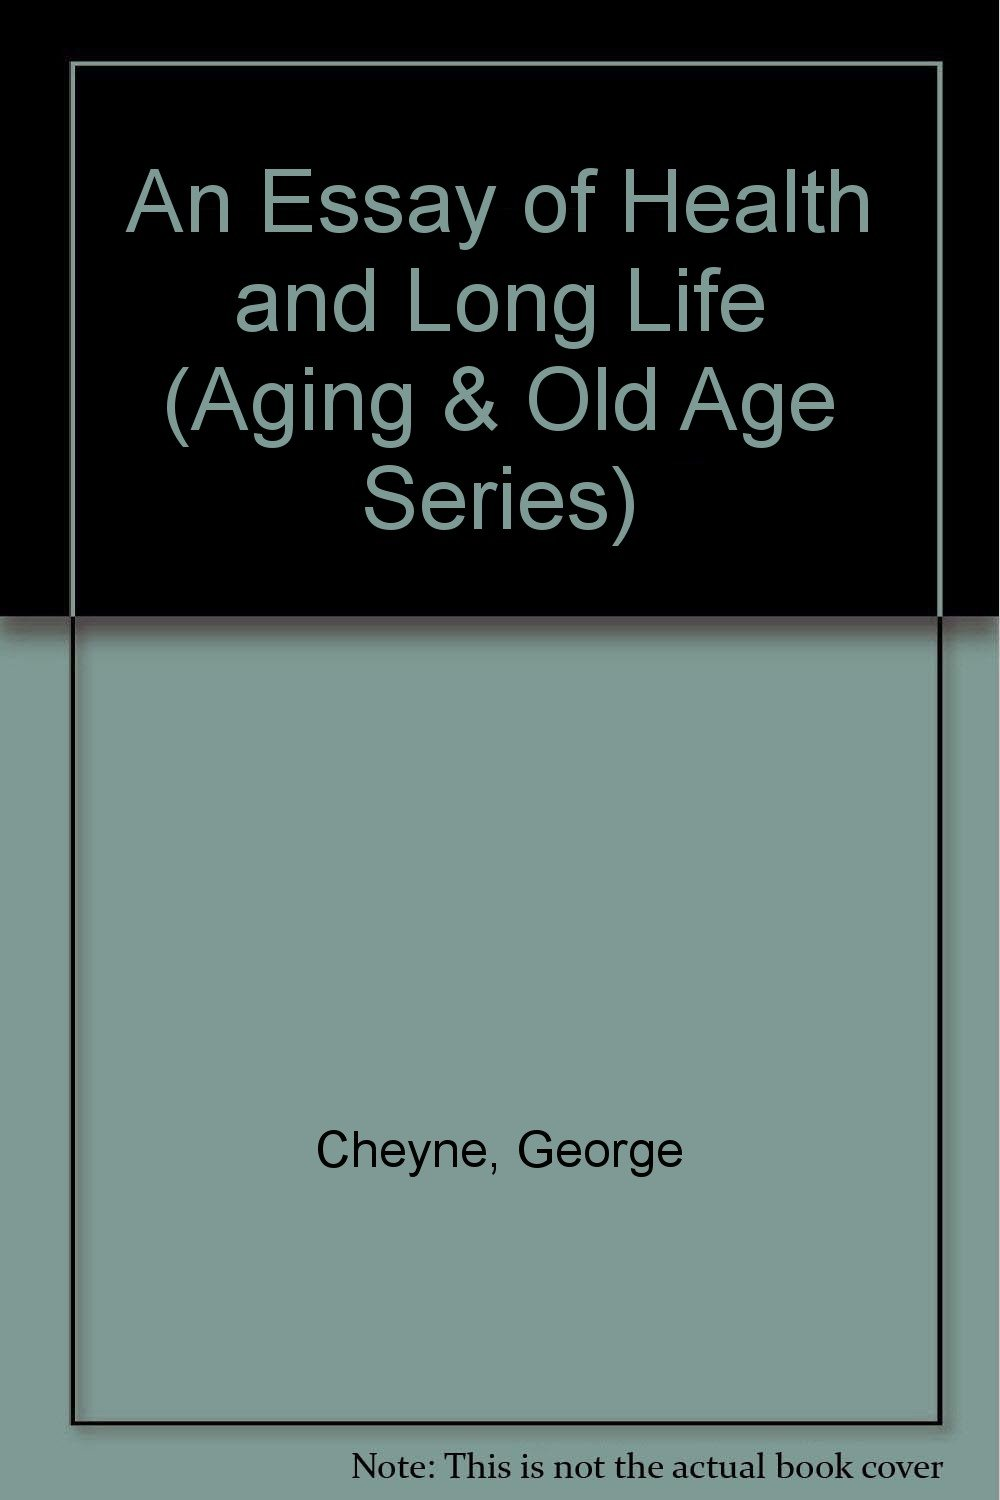 an essay of health and long life aging  old age series george  follow the author